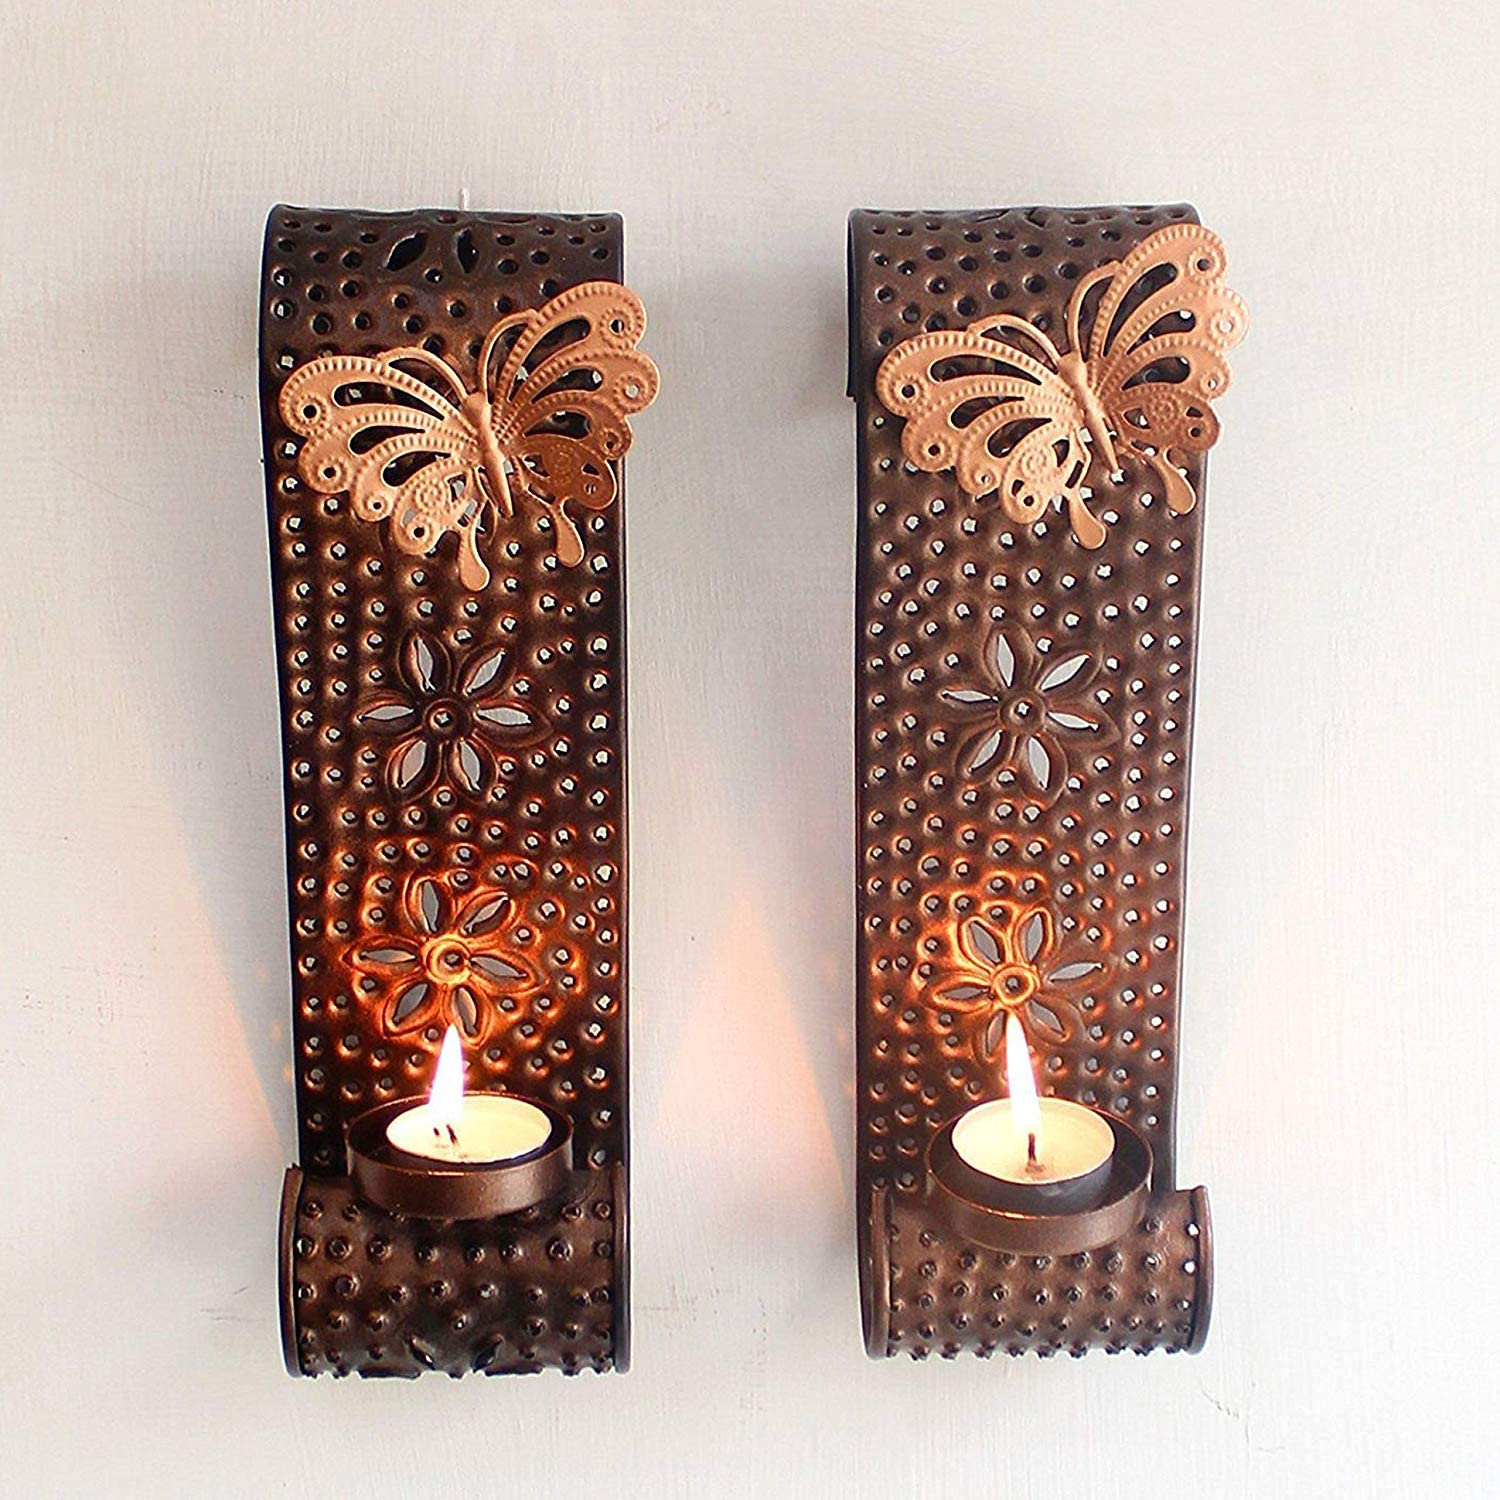 Set of 2 Marigold Stores Beautiful Attractive Antique Gold Butterfly Design Metal Candle Holder Wall Art for Living Room Bathroom Dining Room Decoration